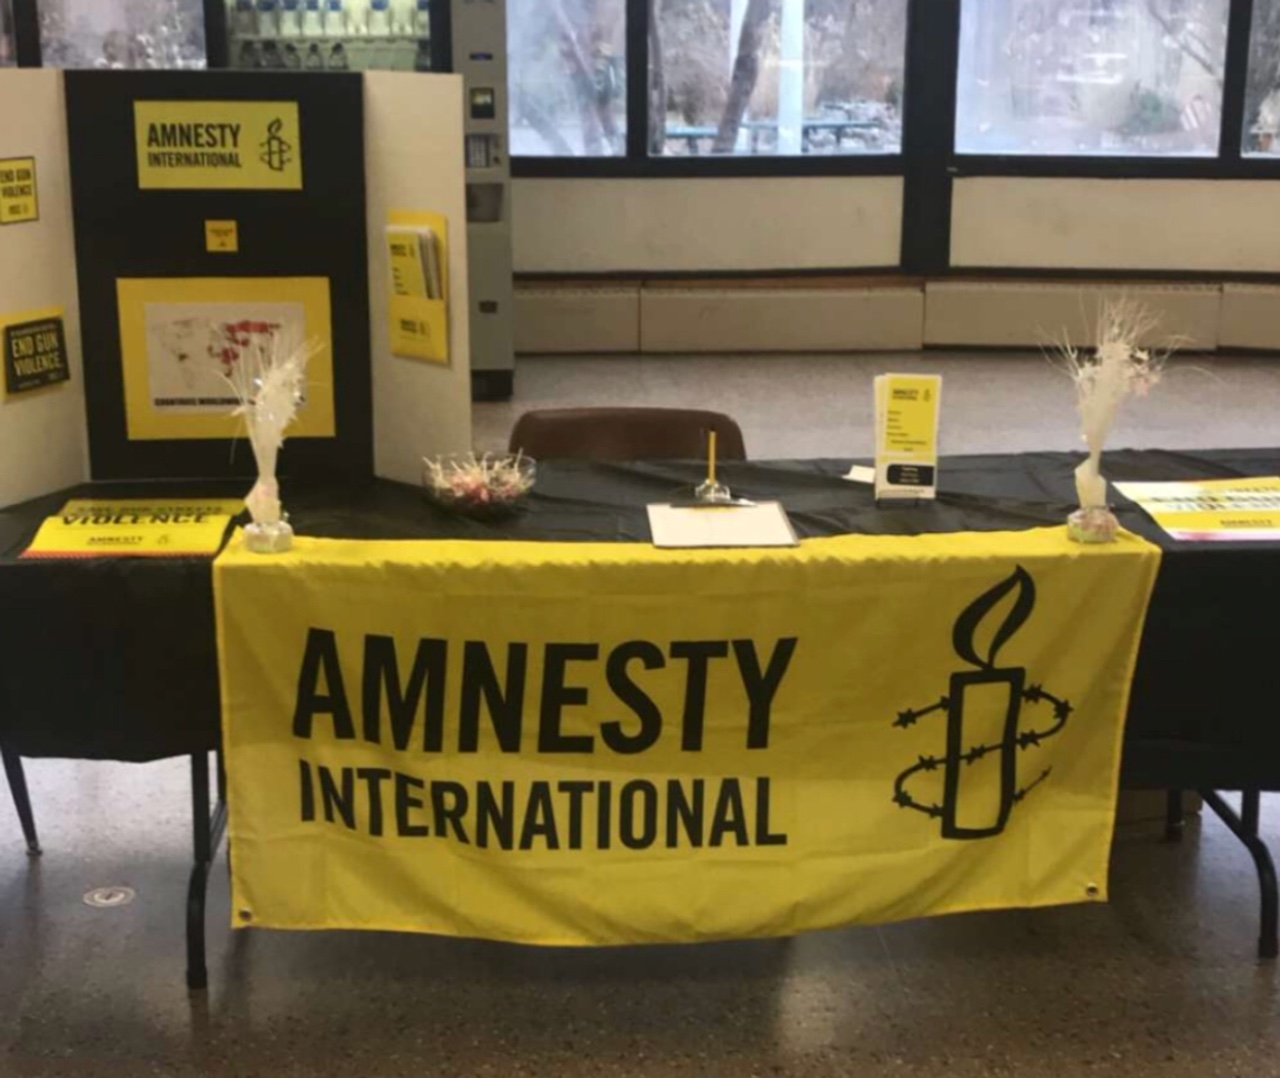 Pictured here is the Amnesty table set up in the rotunda, to encourage registration for the club.